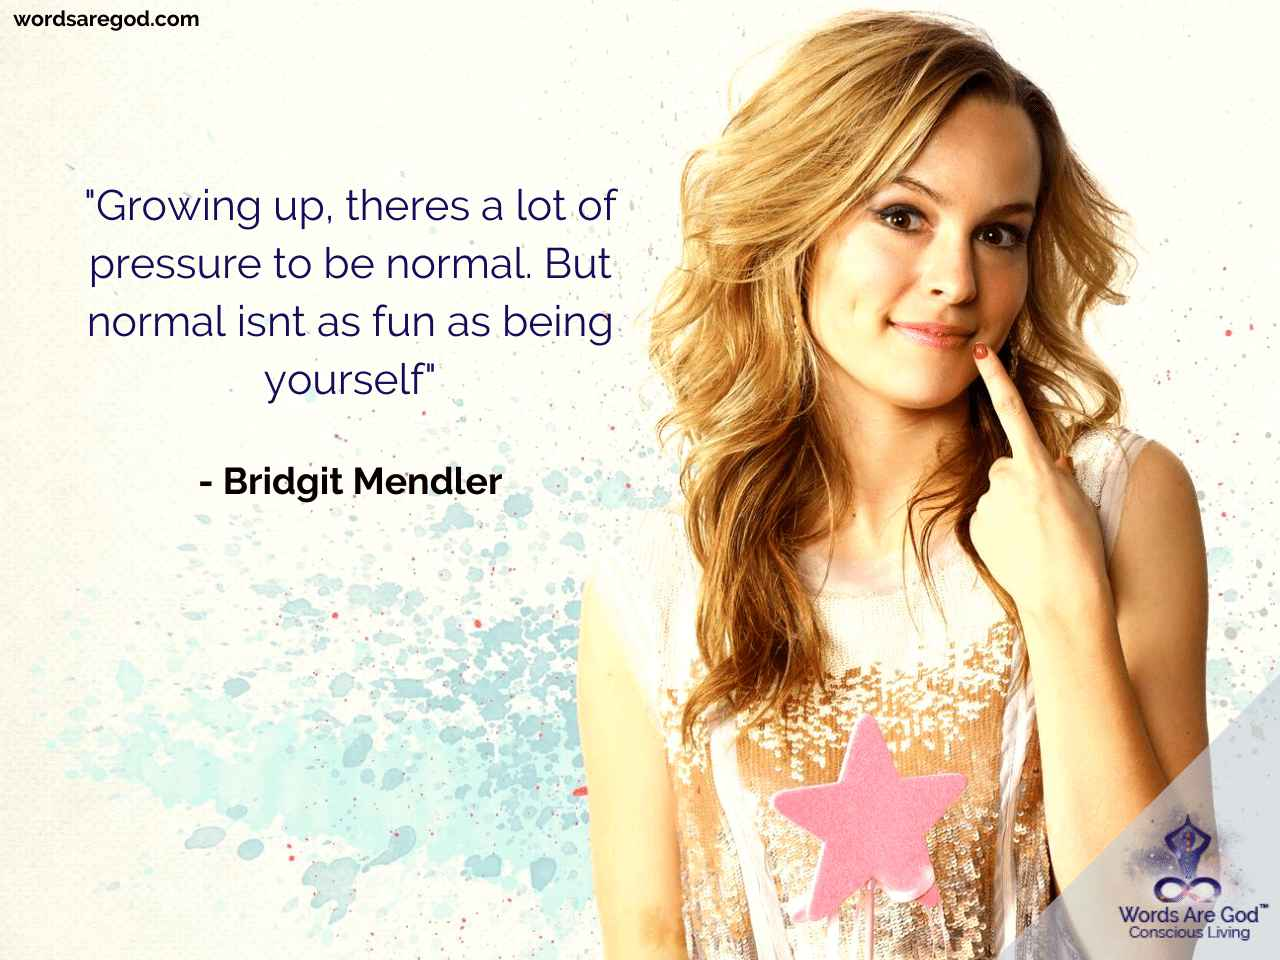 Bridgit Mendler Life Quote by Bridgit Mendler